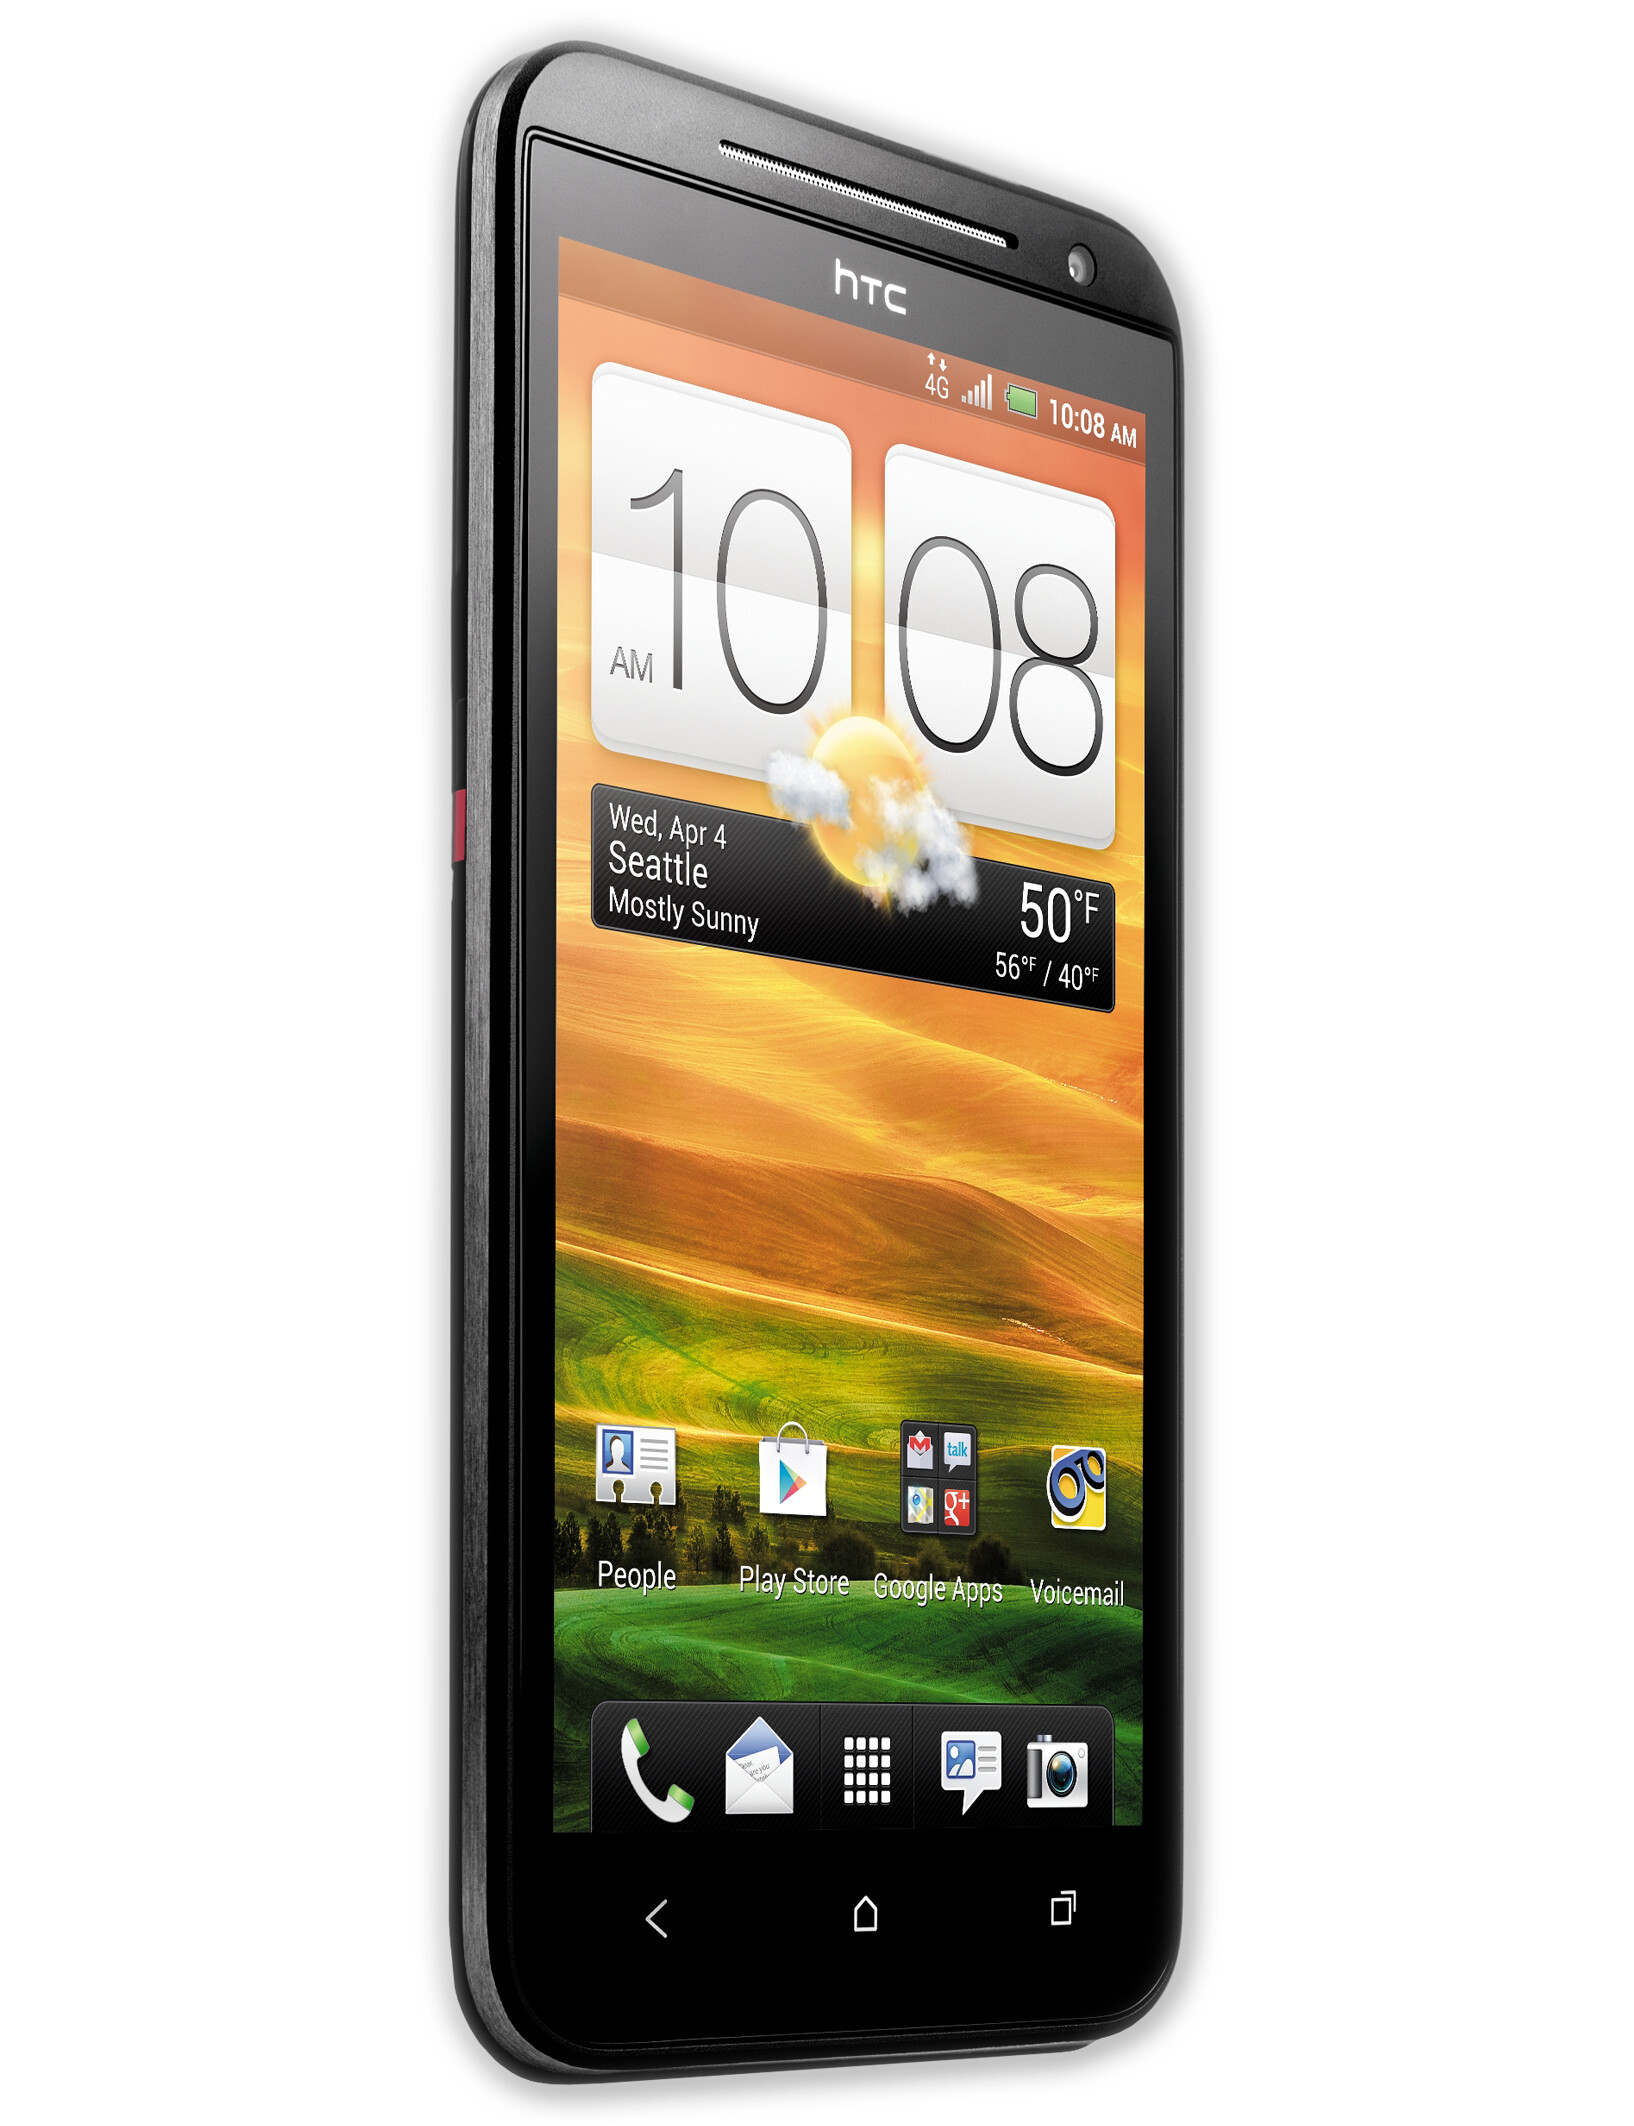 htc evo 4g lte specs. Black Bedroom Furniture Sets. Home Design Ideas